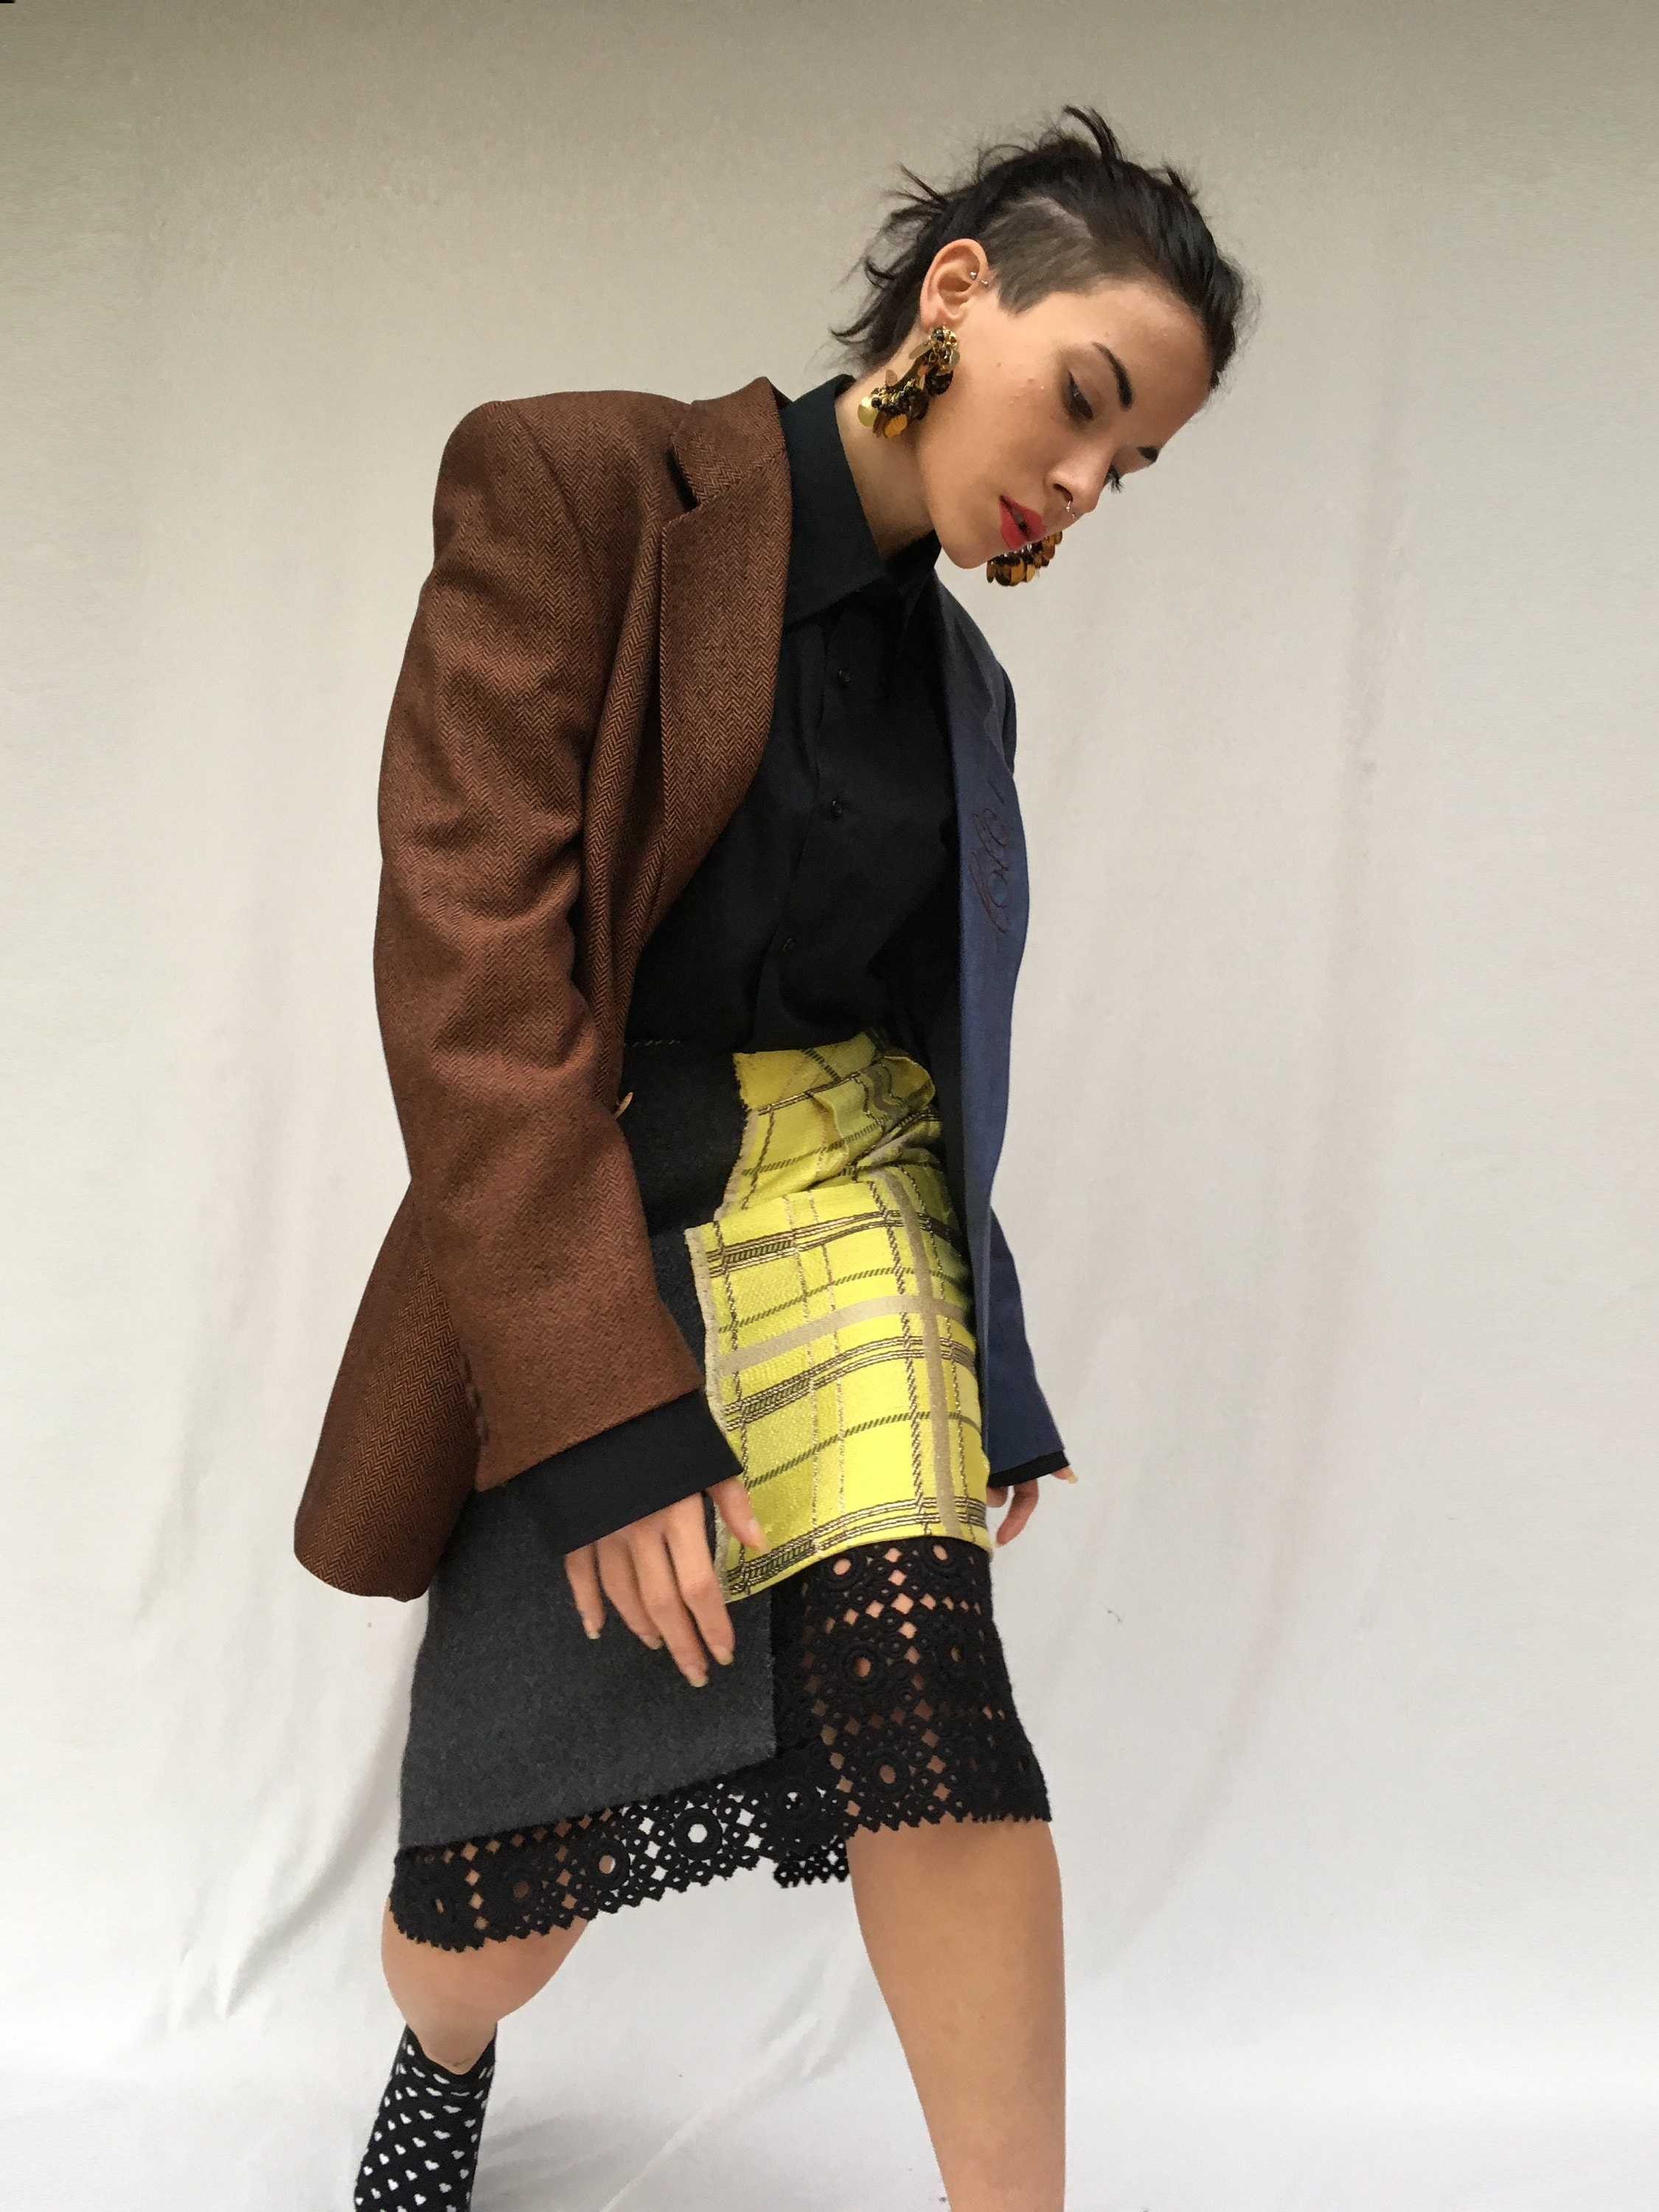 deconstructed skirt and jacket from selected vintage items. sustainability in the creative recovery of high quality waste clothing LOLA DARLING